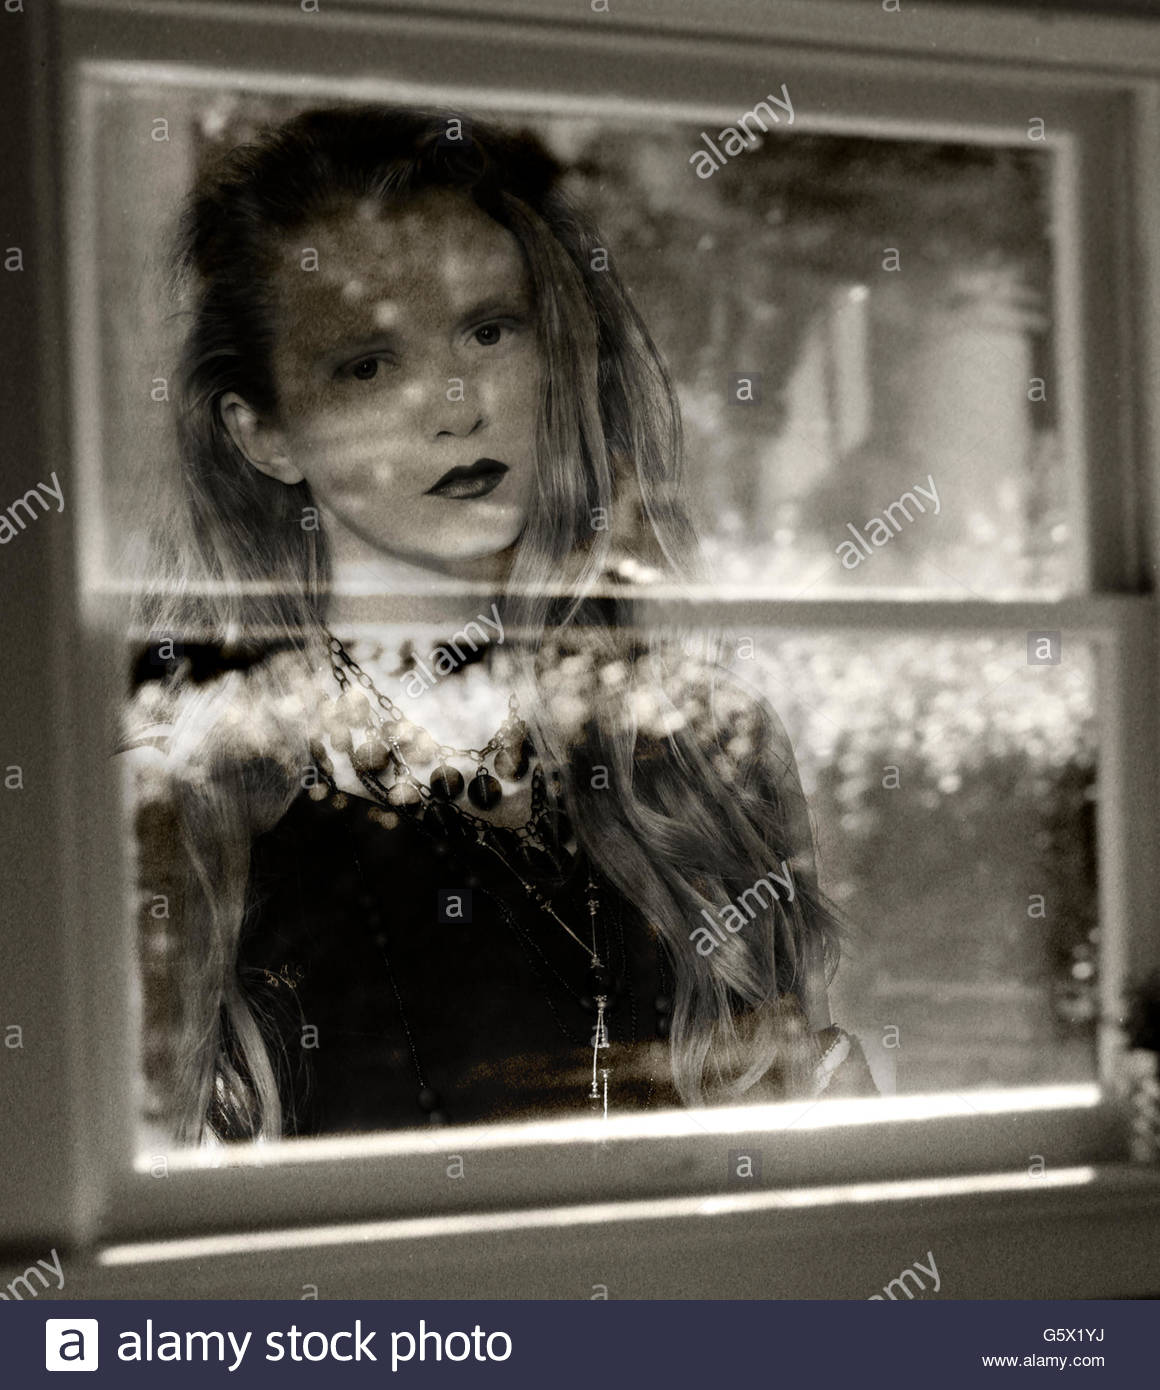 Young woman looking through window. Stock Photo